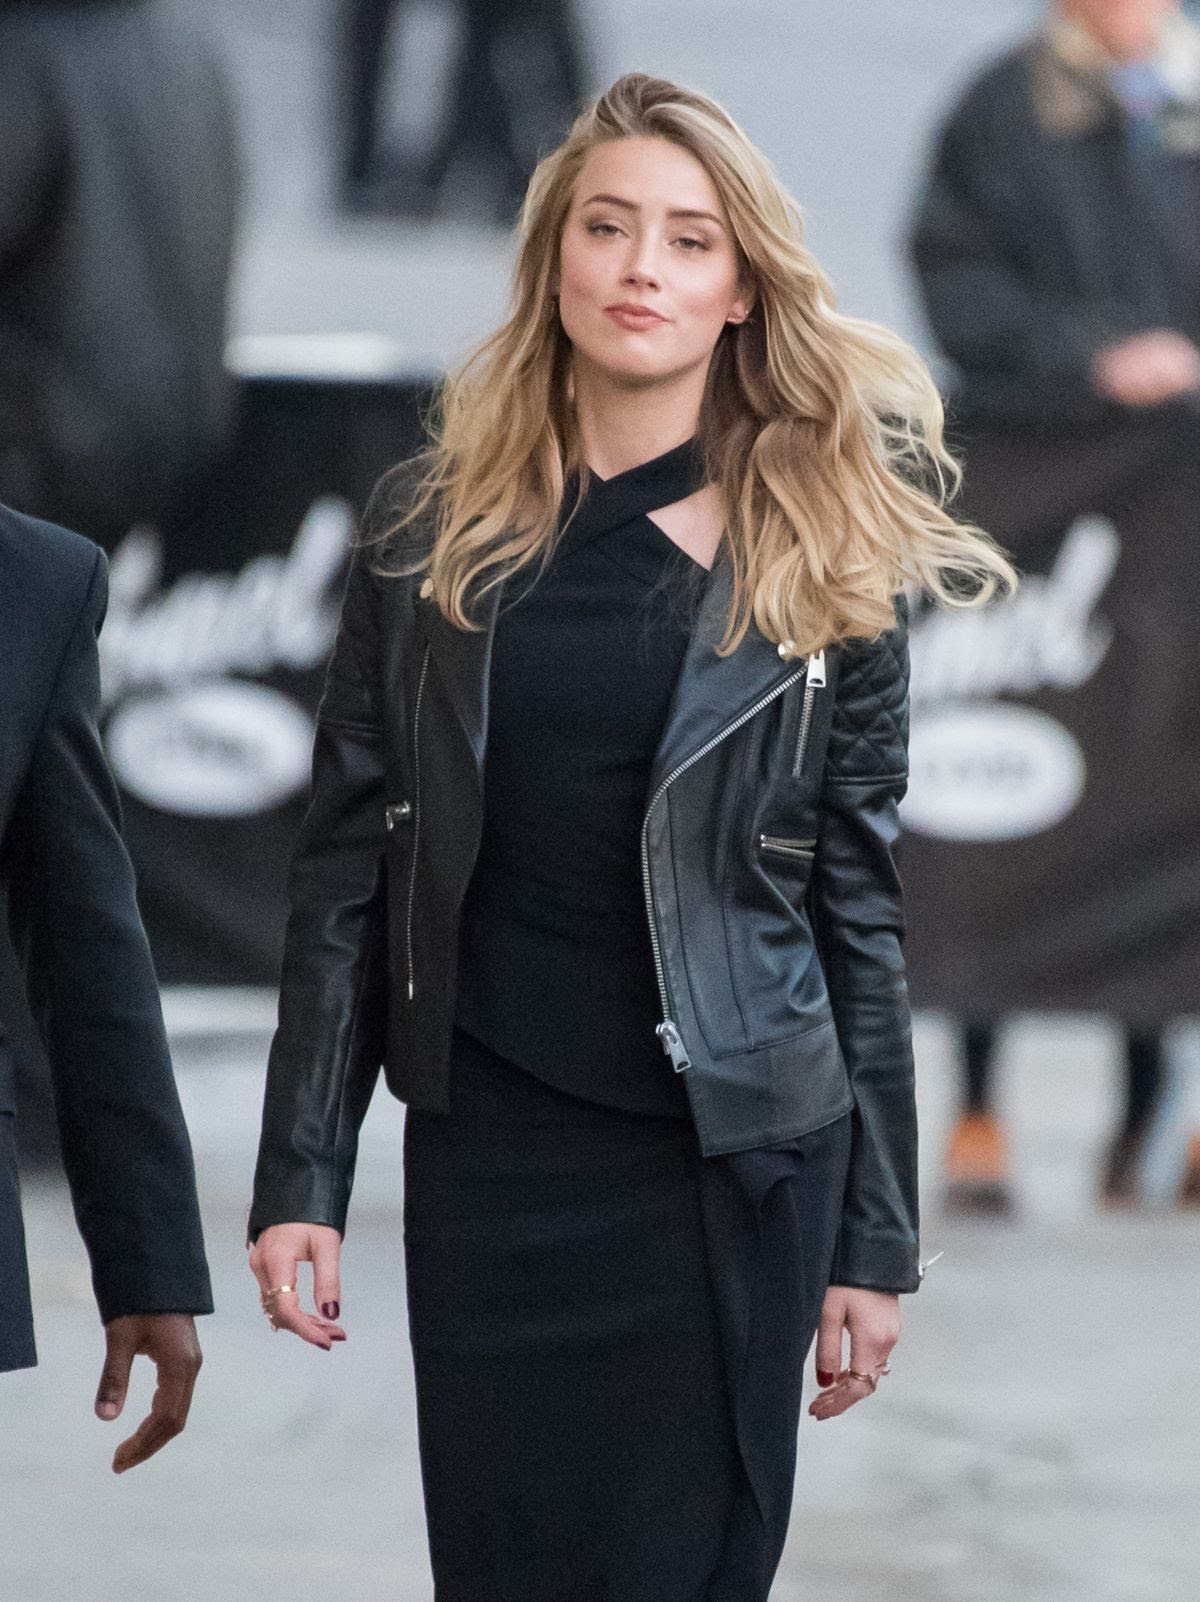 AMBER HEARD Arrives at Jimmy Kimmel Live in Los Angeles 11/18/2015